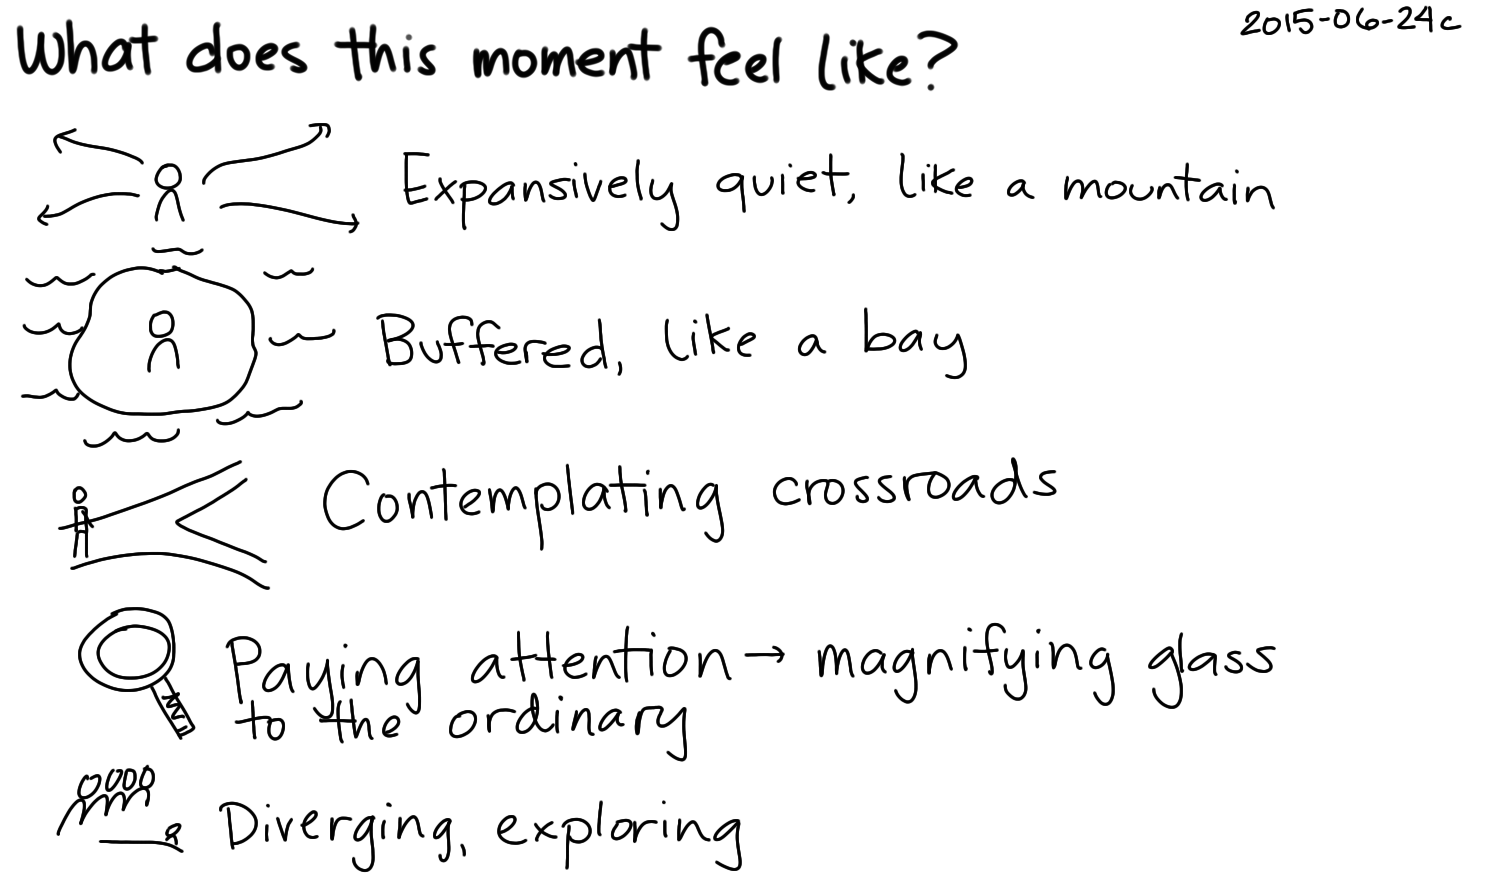 2015-06-24c What does this moment feel like -- index card #limbo #quiet.png